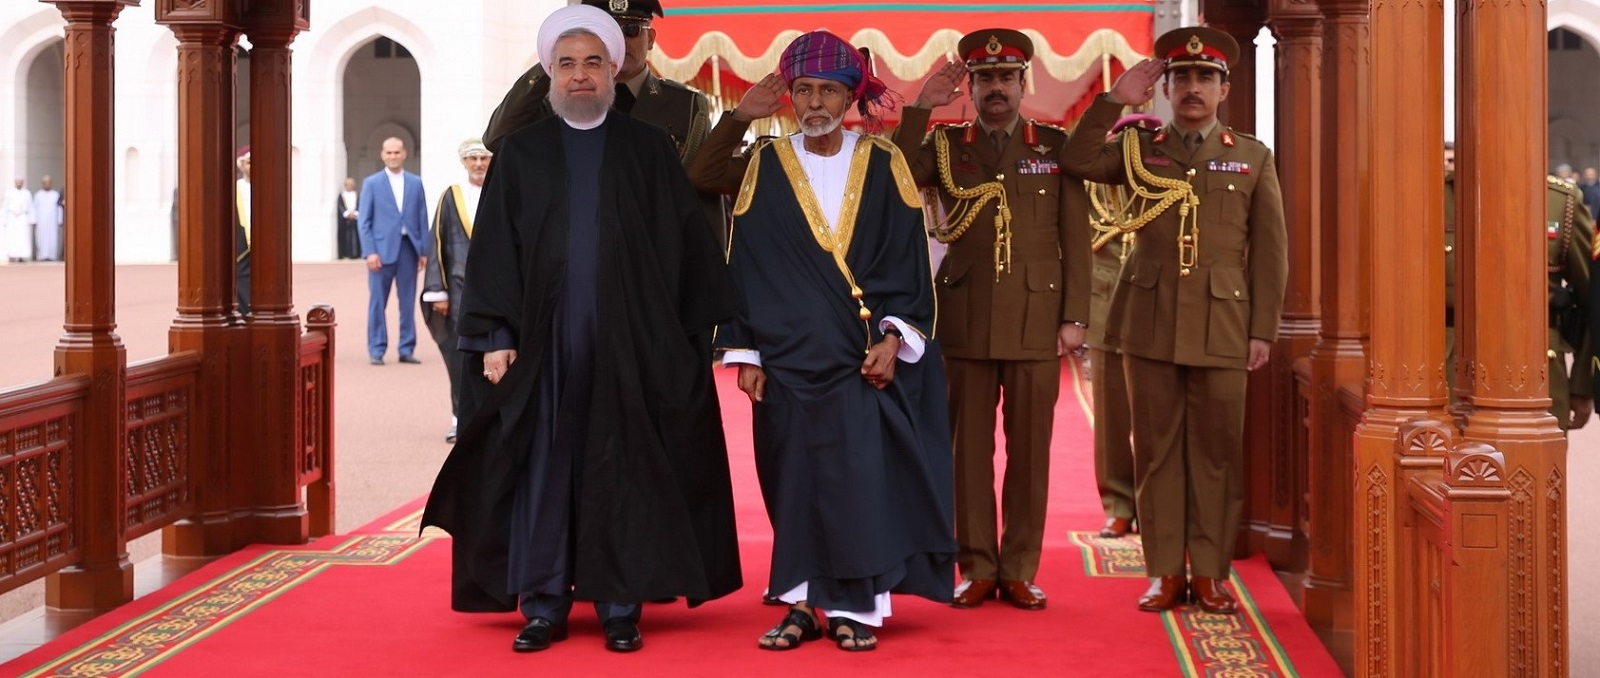 Iran's President Hassan Rouhani with Oman's Sultan Qaboos bin Said in Oman on 15 February 2017. (Photo: Presidency of Iran/Getty Images)